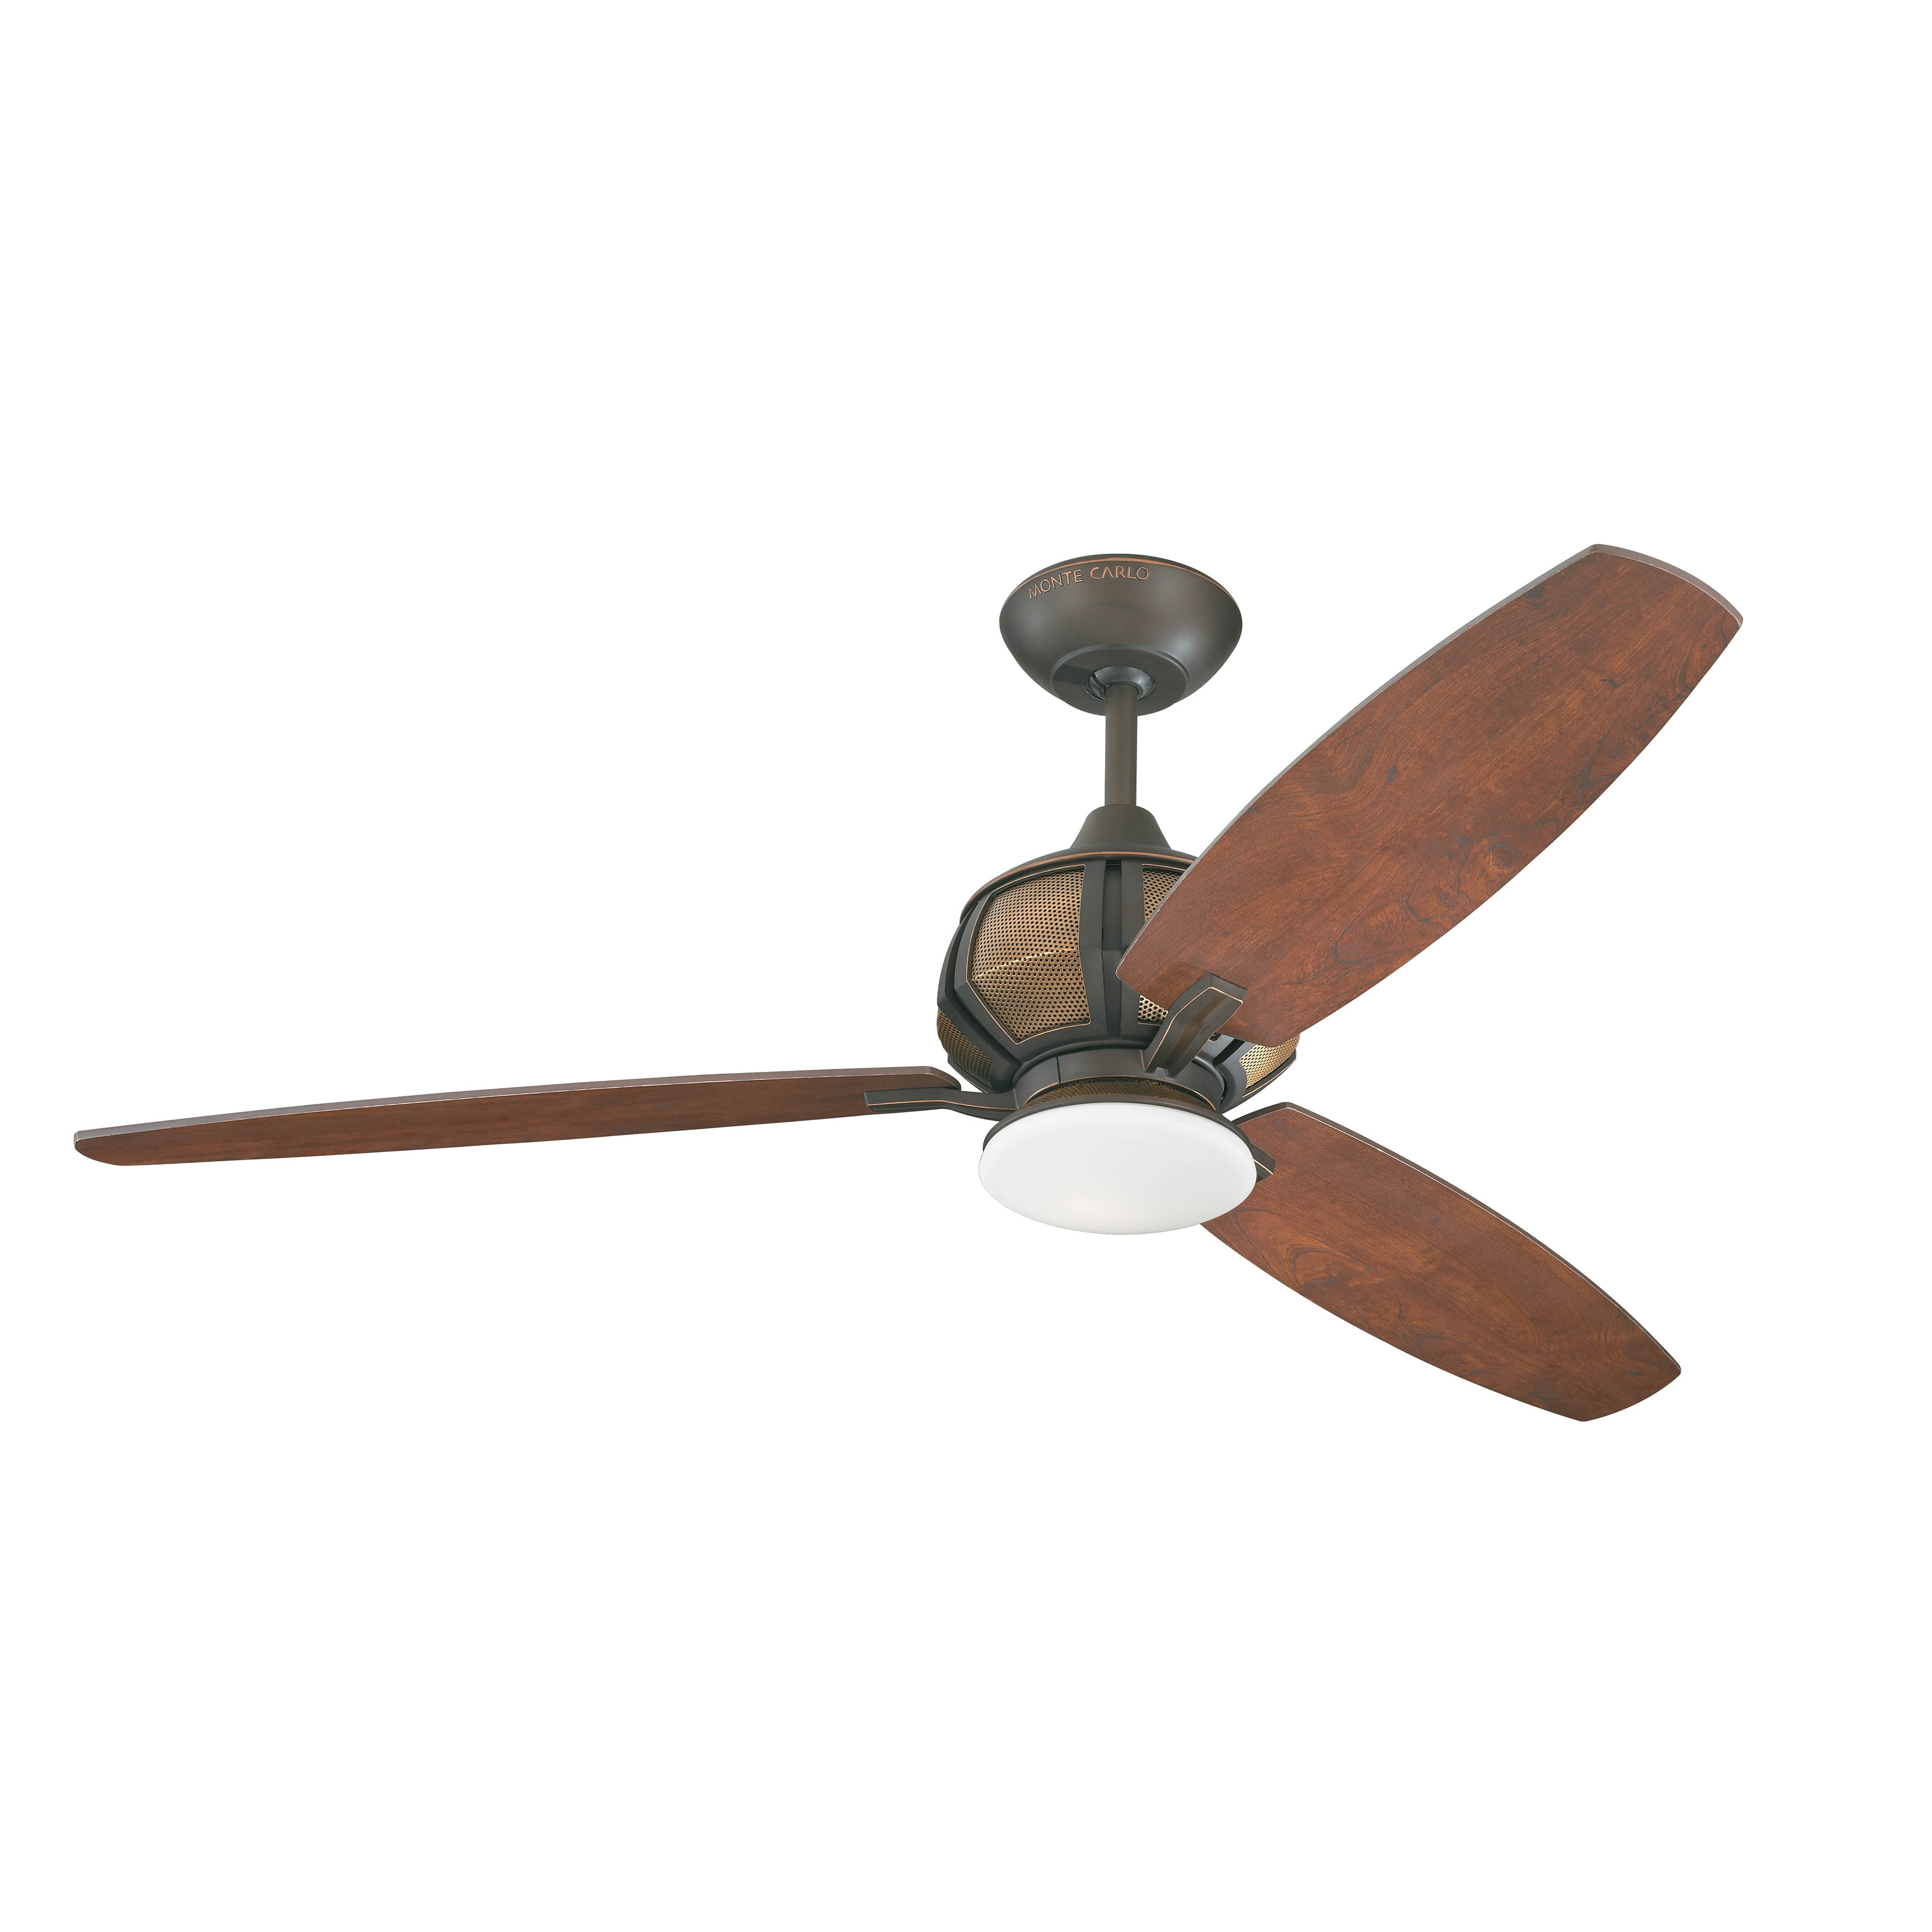 Monte Carlo Acura Roman Bronze/ Bavarian Walnut 52-inch Ceiling Fan at Sears.com